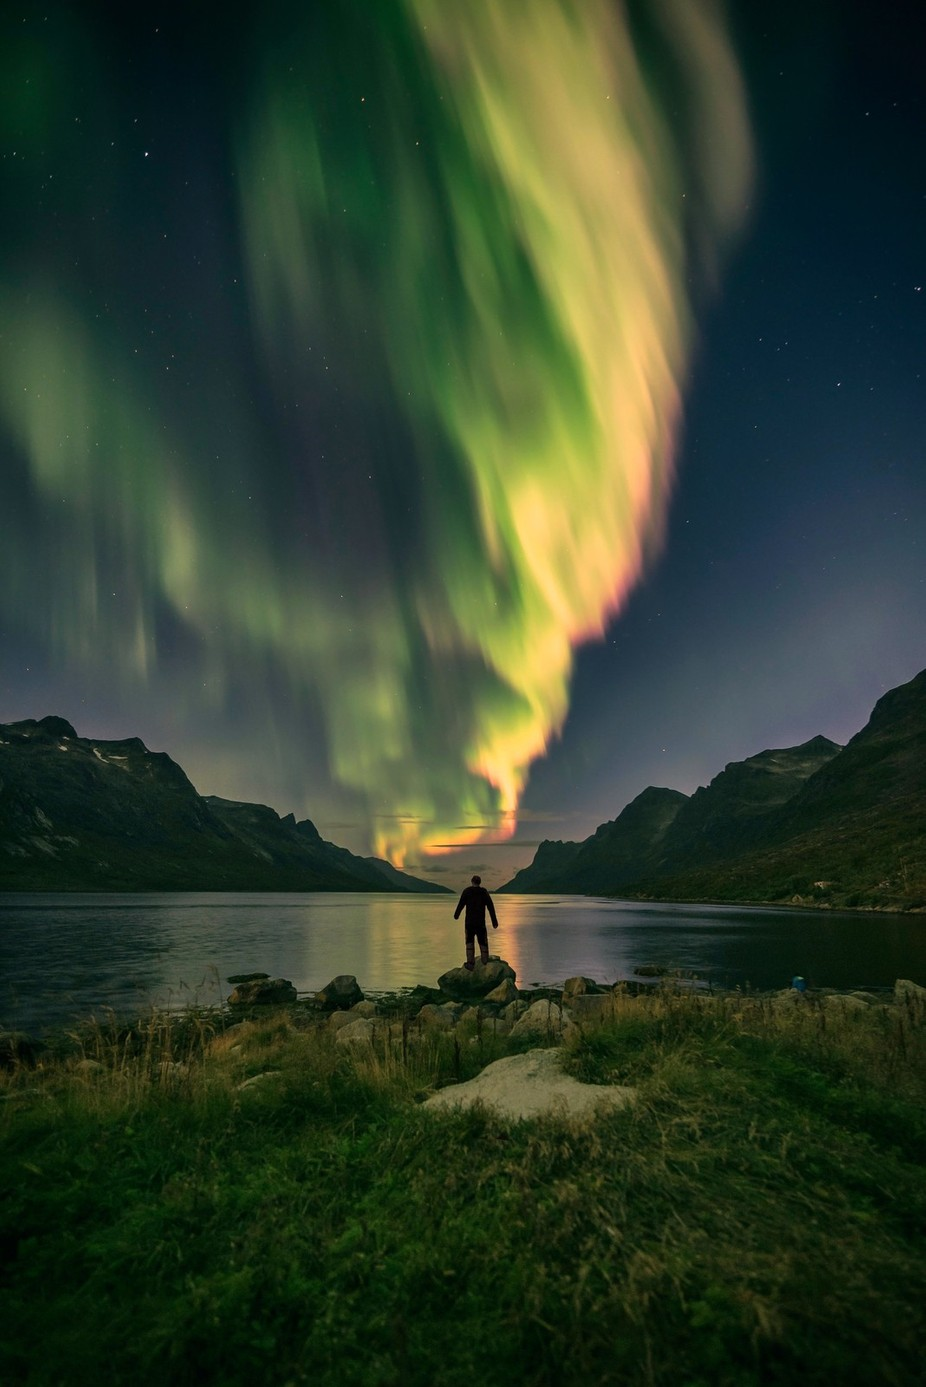 sky is on fire by Eventyr - People In Large Areas Photo Contest